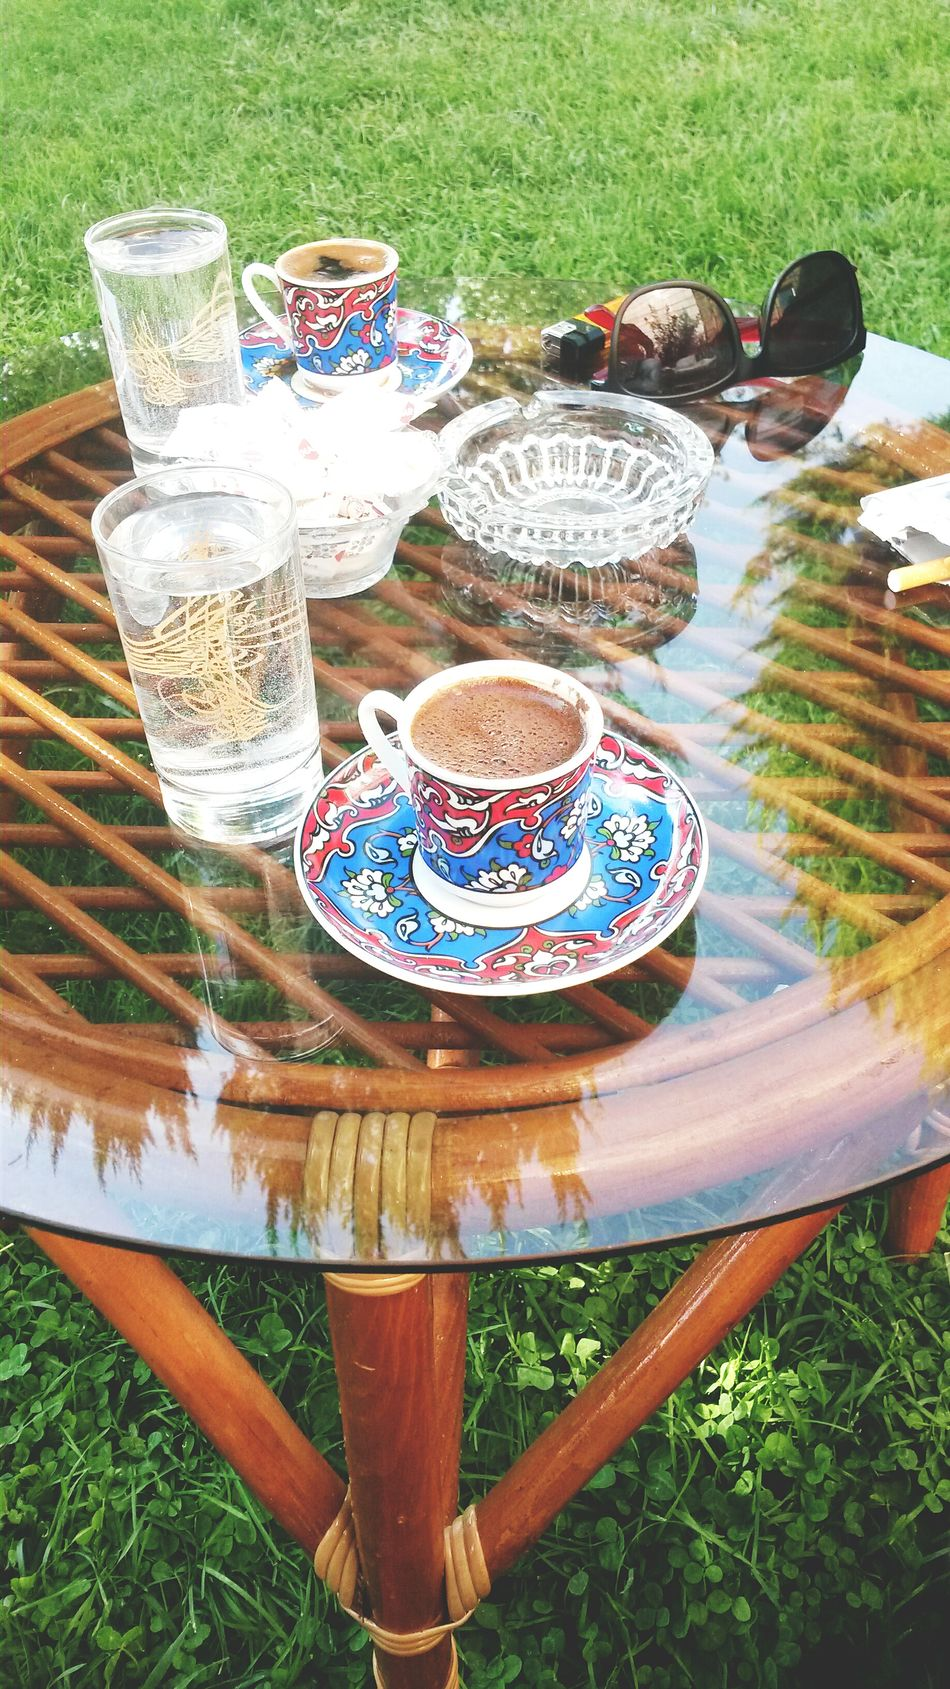 Coffee Coffee Time Coffee And Cigarettes Turkishcoffee Turkish Coffee Turkey Turkeydenizili♥ Green Green Green!  Amatörfotoğraf Mobilephotography Mobile Photography Mobile_photographer Love Glasses Redglasses Blackglasses Wather Ottoman Style